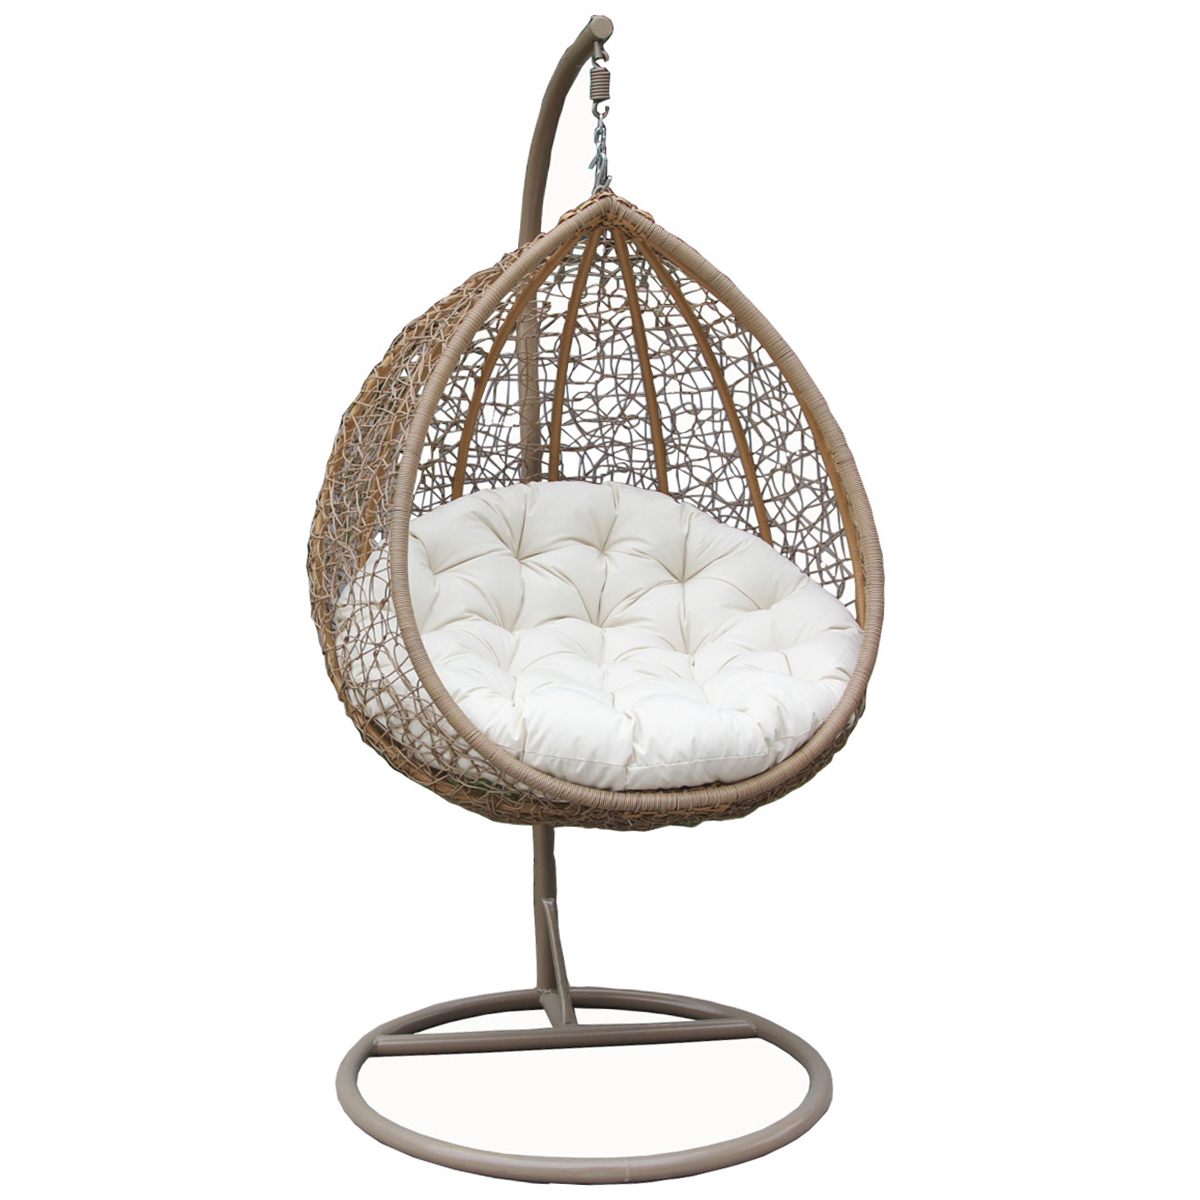 Bentley Garden Wicker Rattan Patio Hanging Swing Chair ...